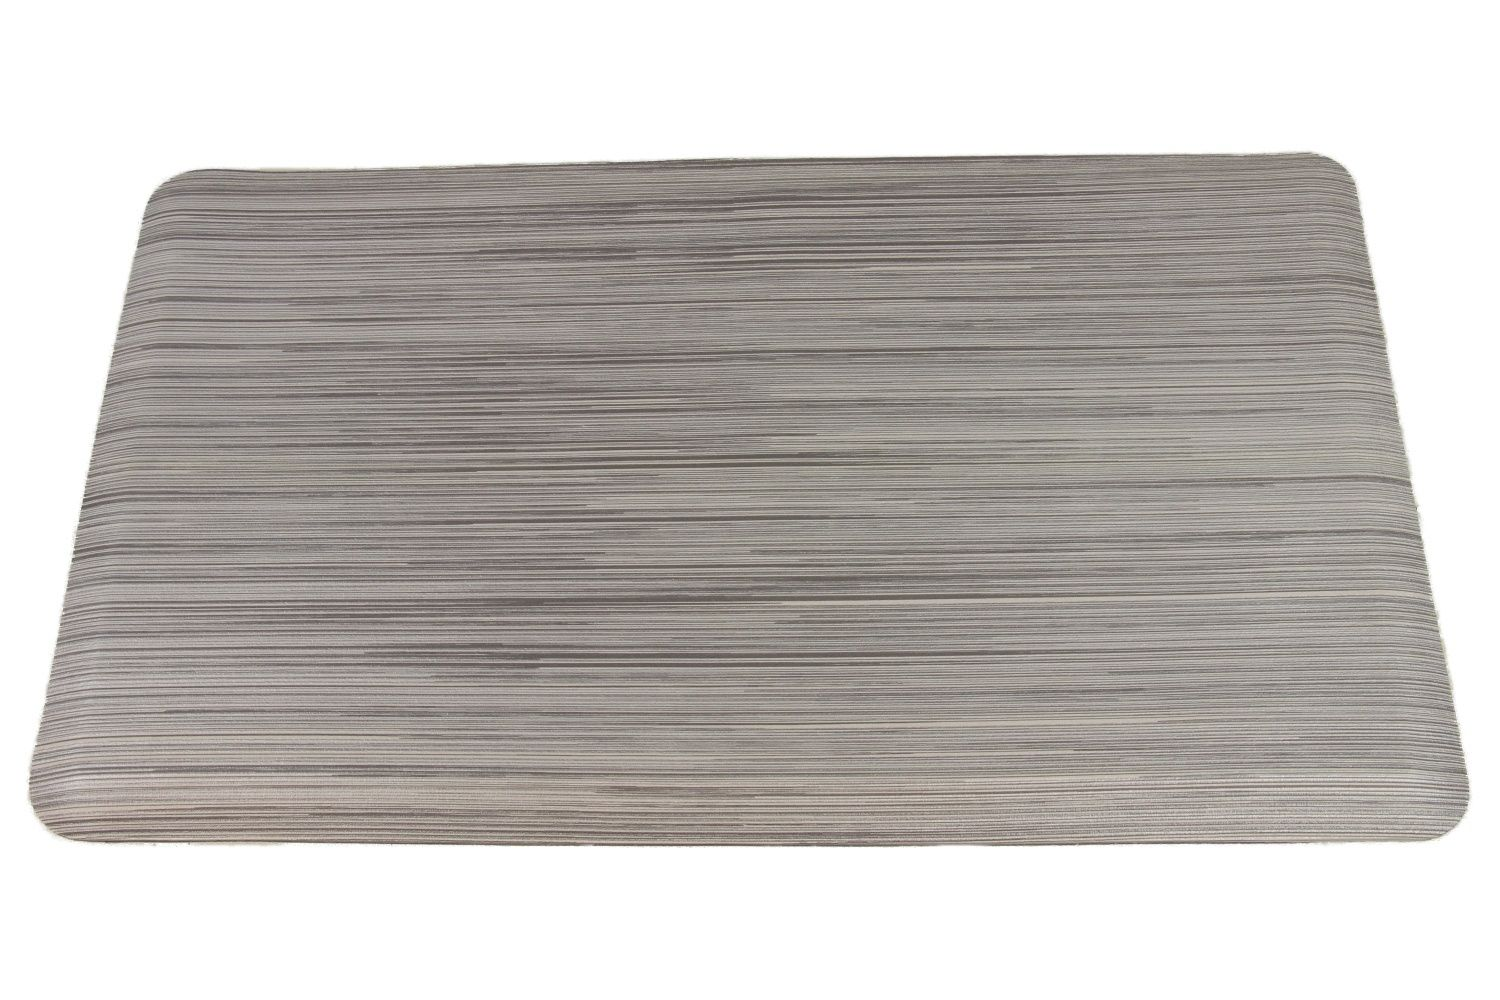 home | kitchen comfort mat, cuisinart, stainless steel